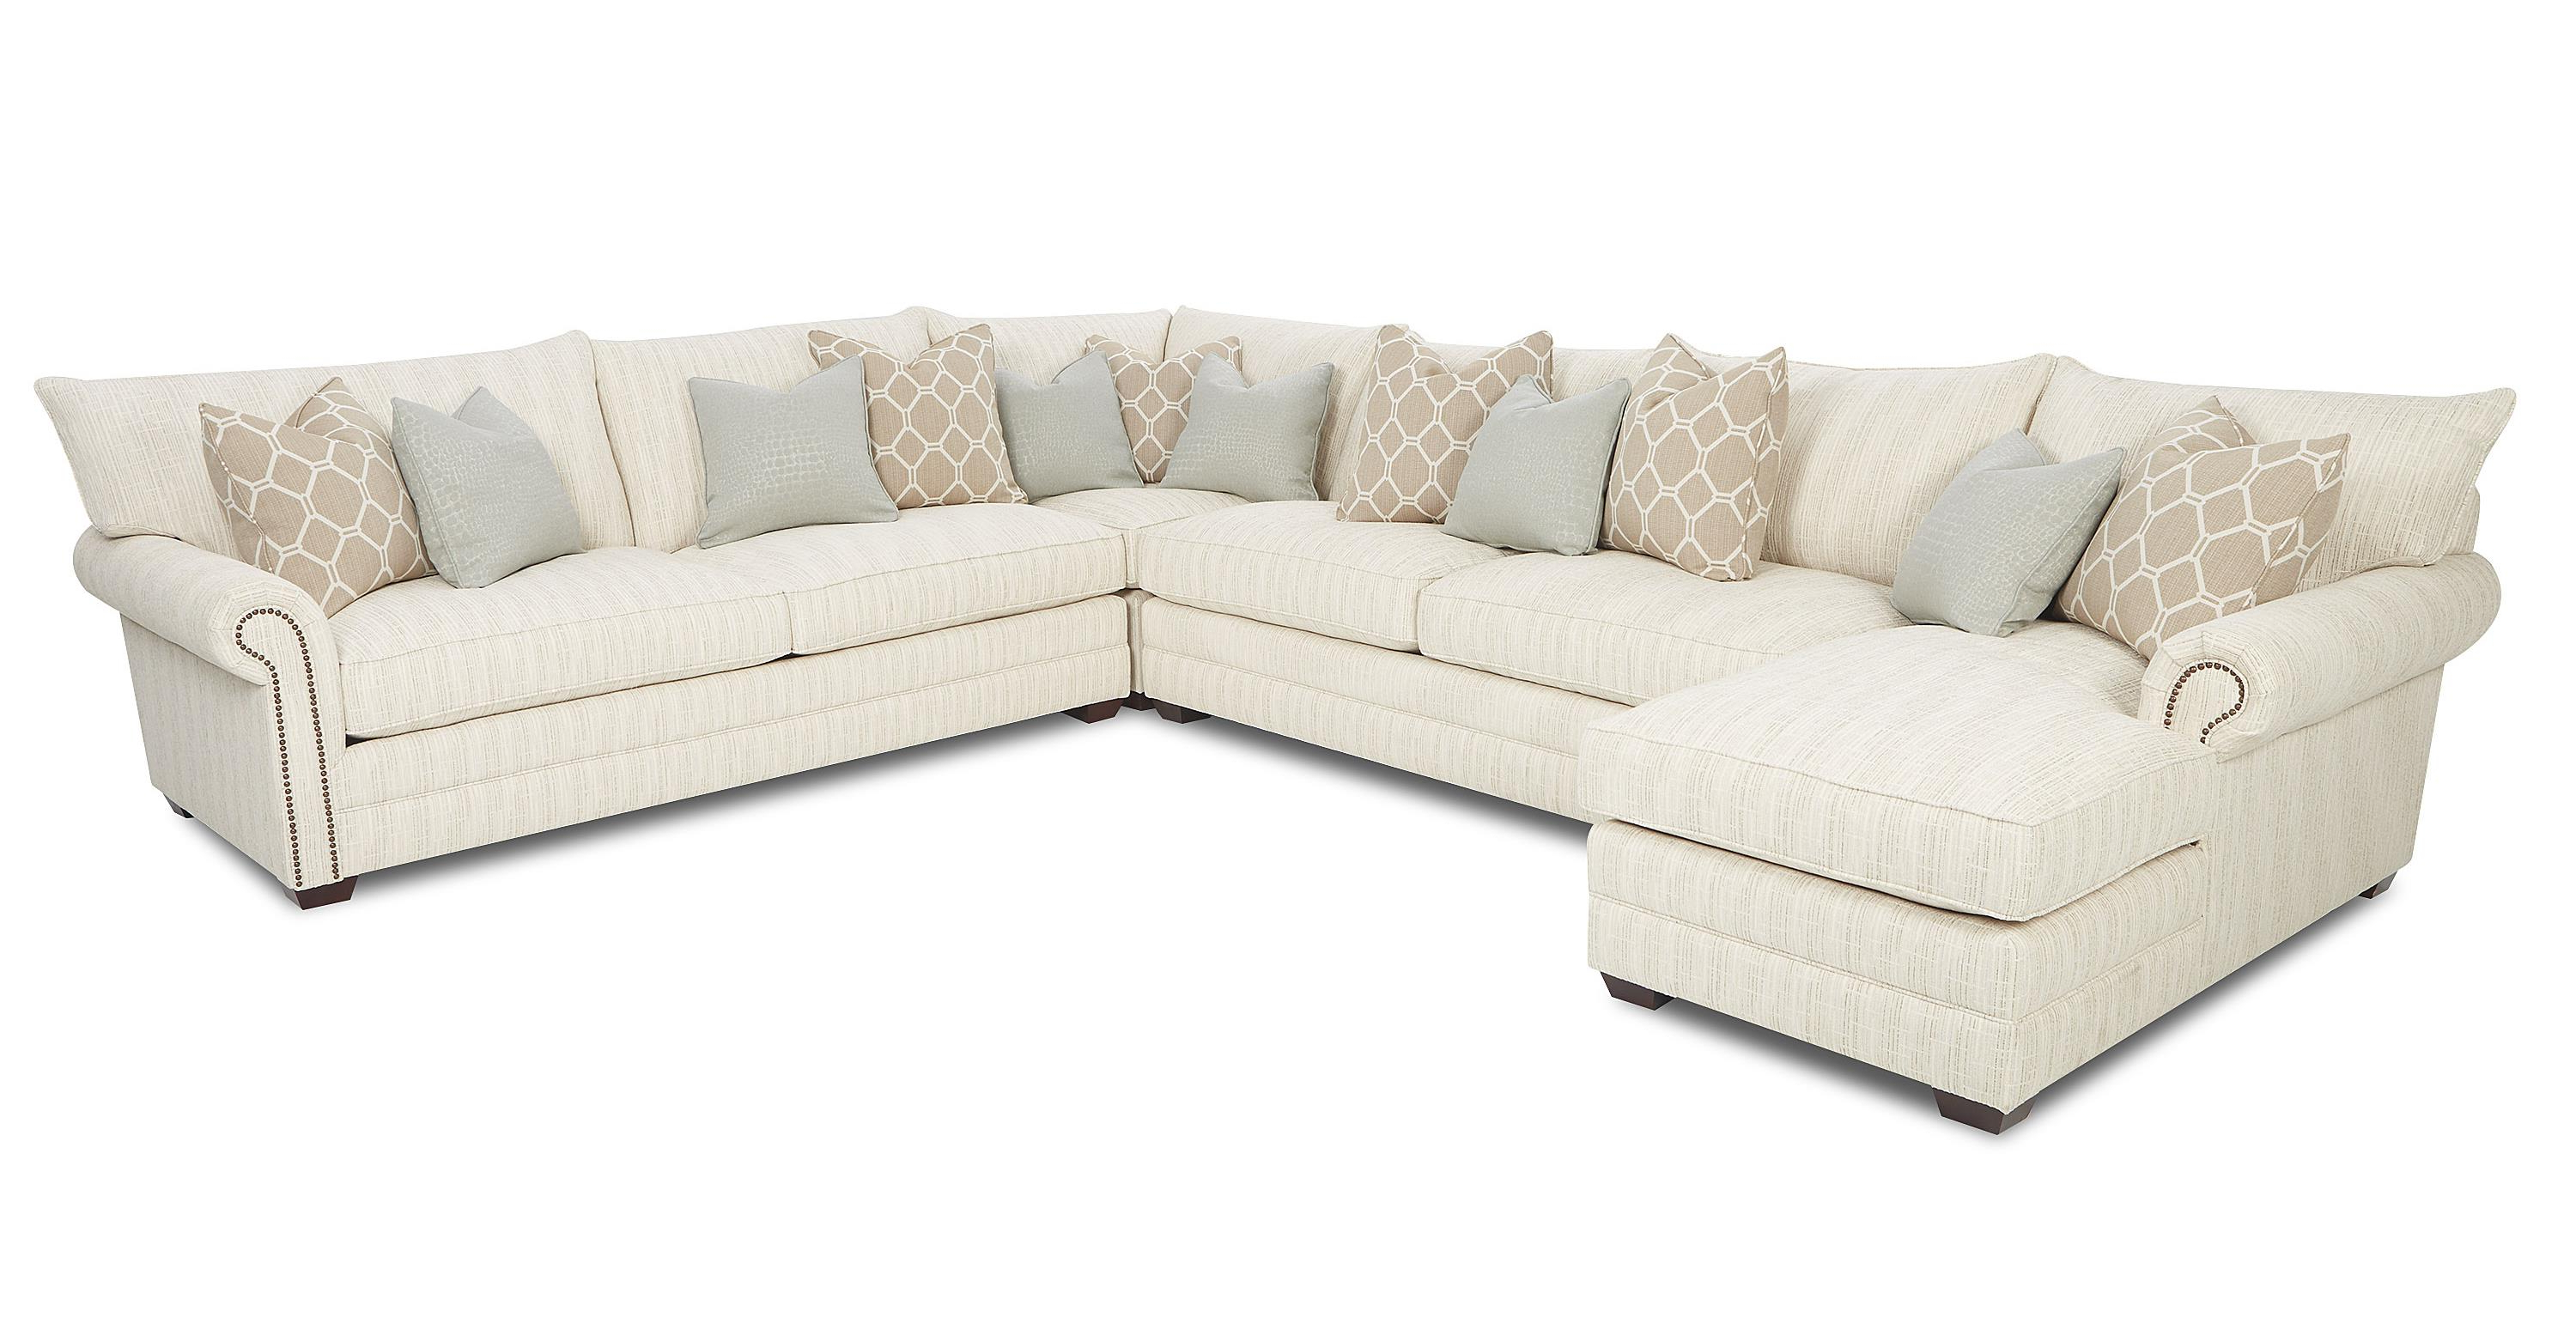 Latest Chaise Sofa Chairs Within Klaussner Huntley Traditional Sectional Sofa With Nailhead Trim And (View 12 of 20)